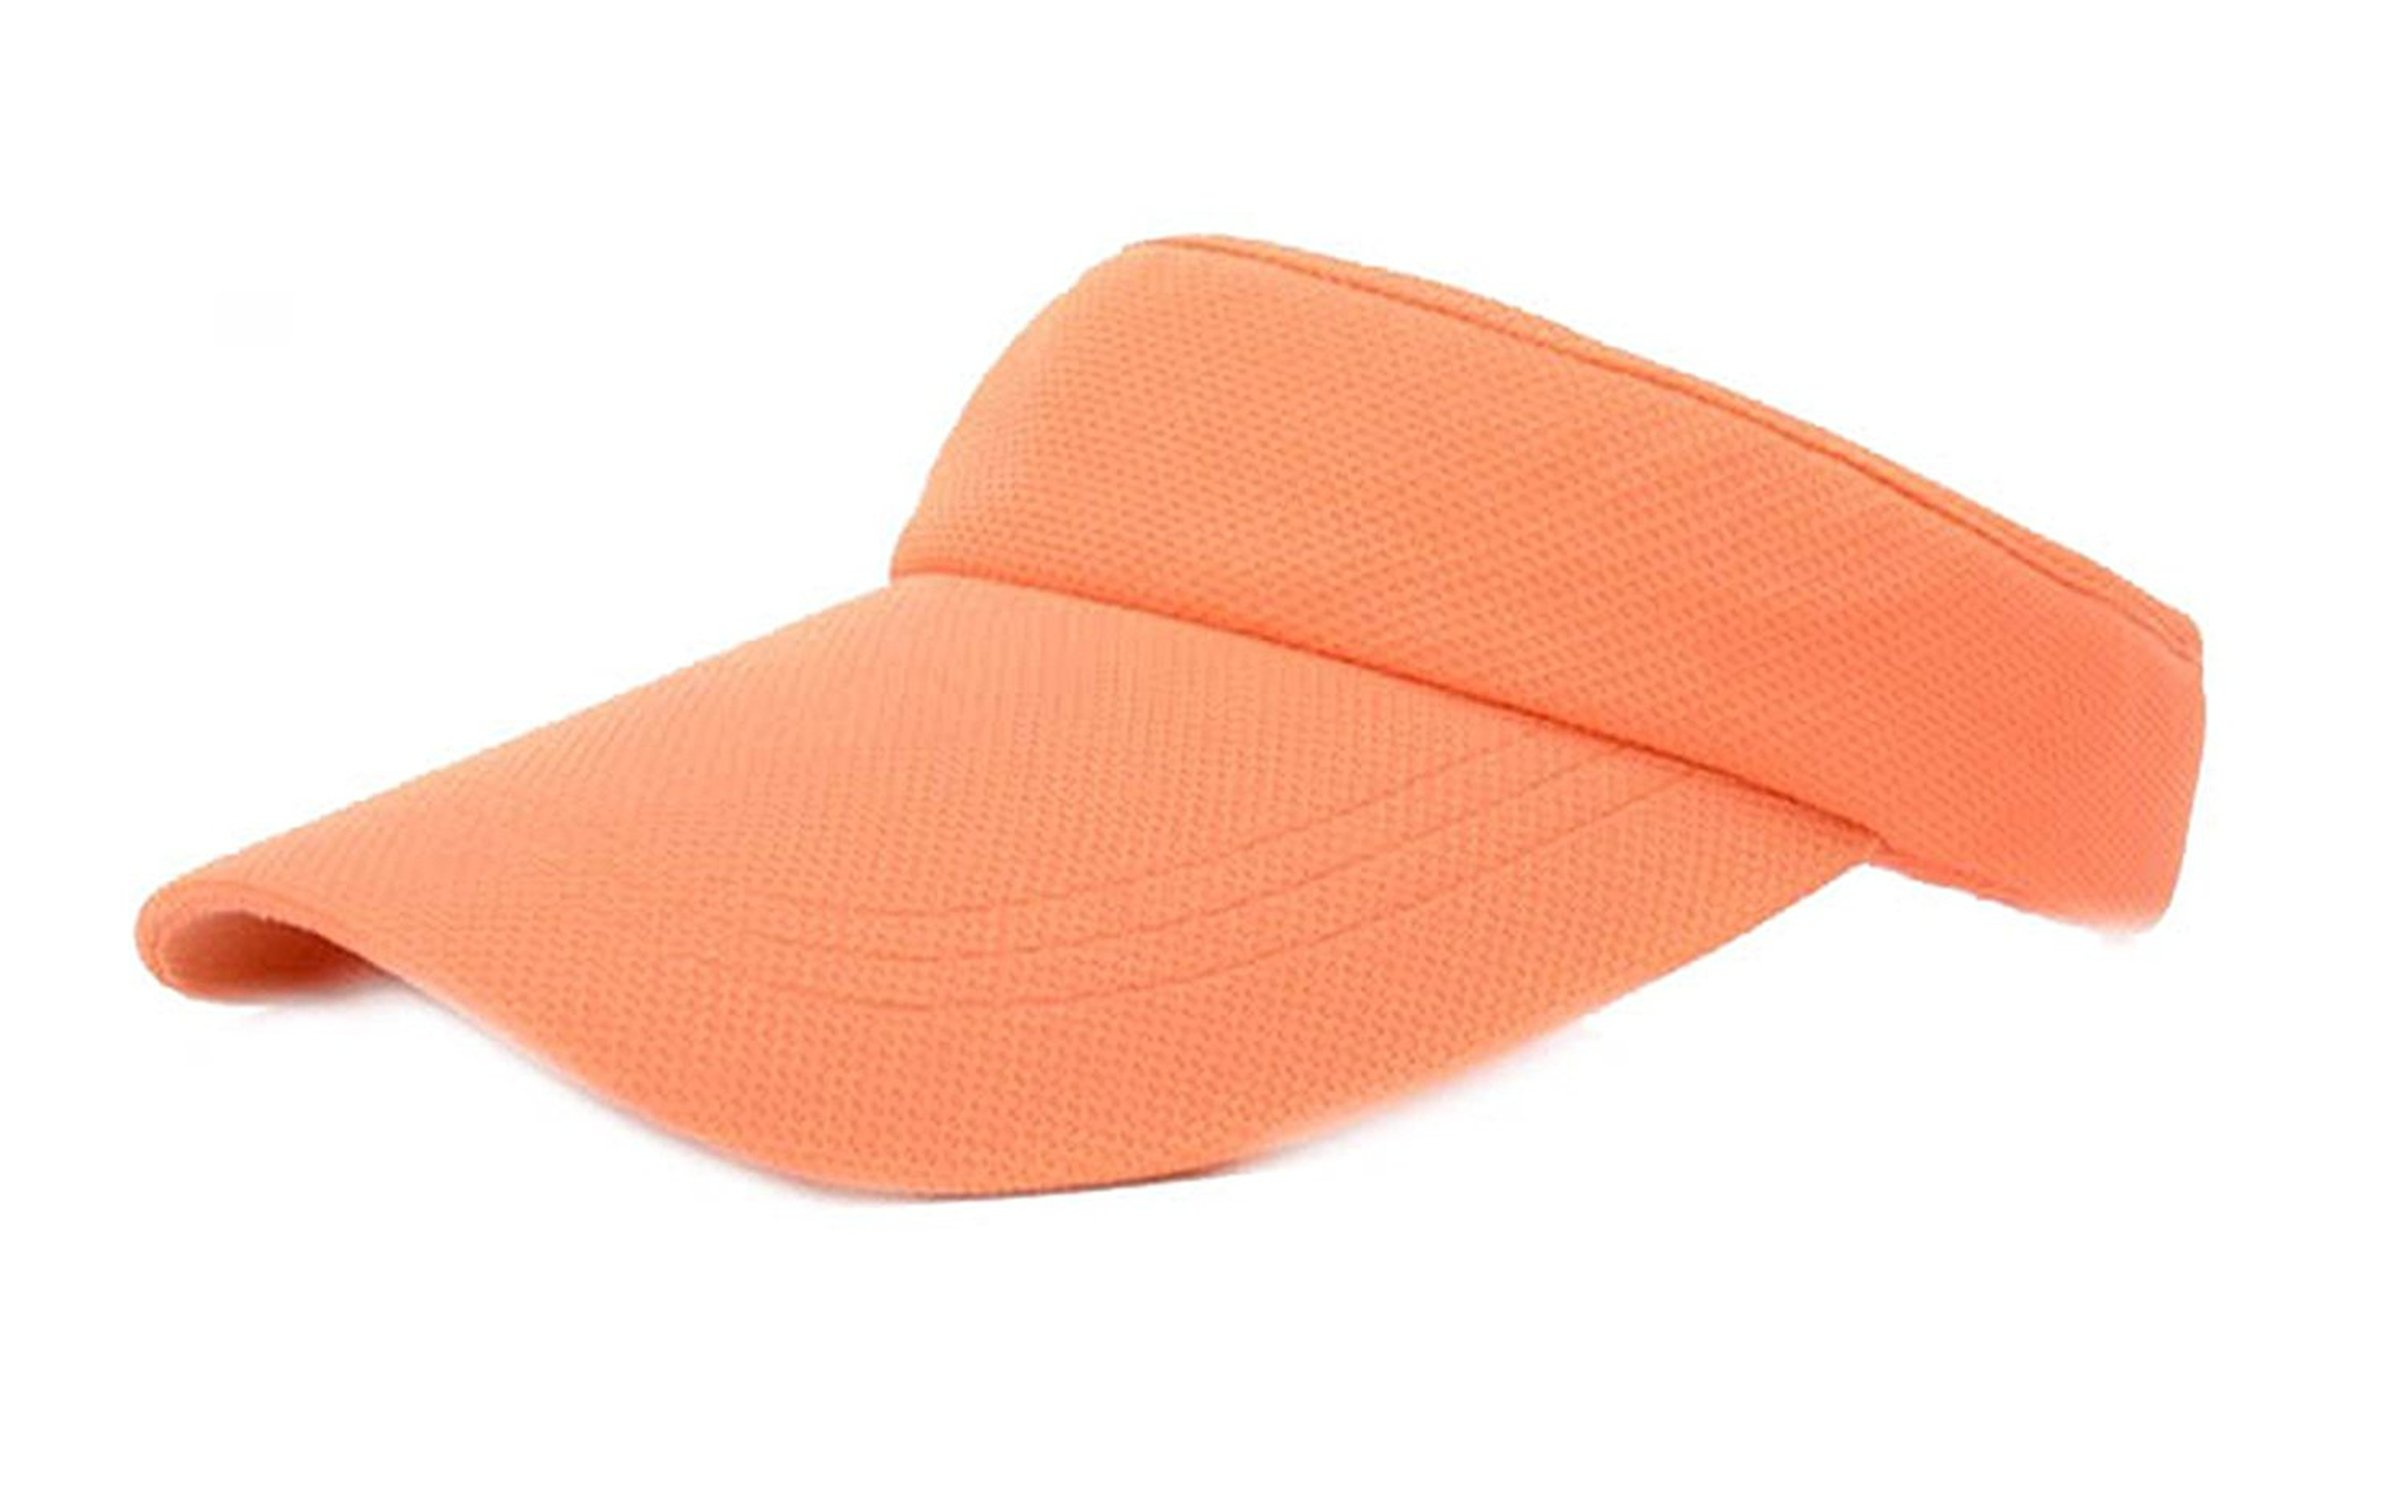 2018 New Topless Tennis Caps Stylish Sun Hat for Women Fashion Beach Sports Sun Visor Hat Golf Caps for Summer Travel,OneSize,Orange